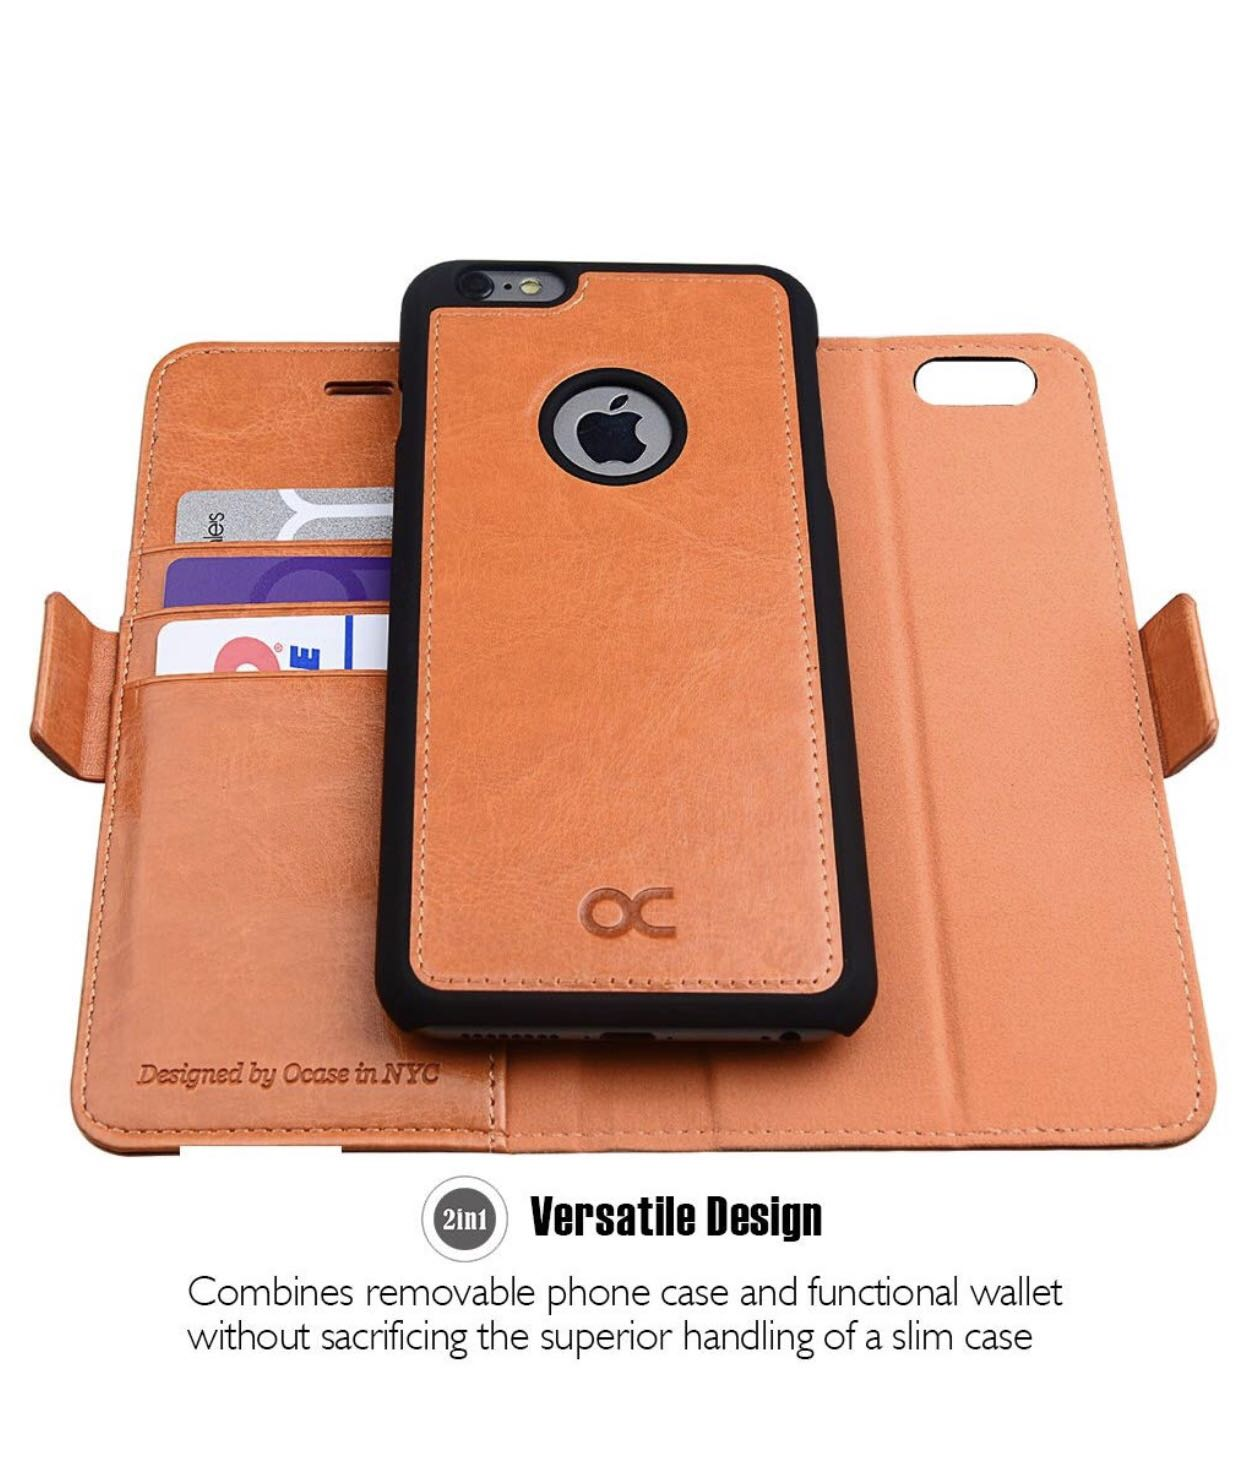 ocase iphone 6 case